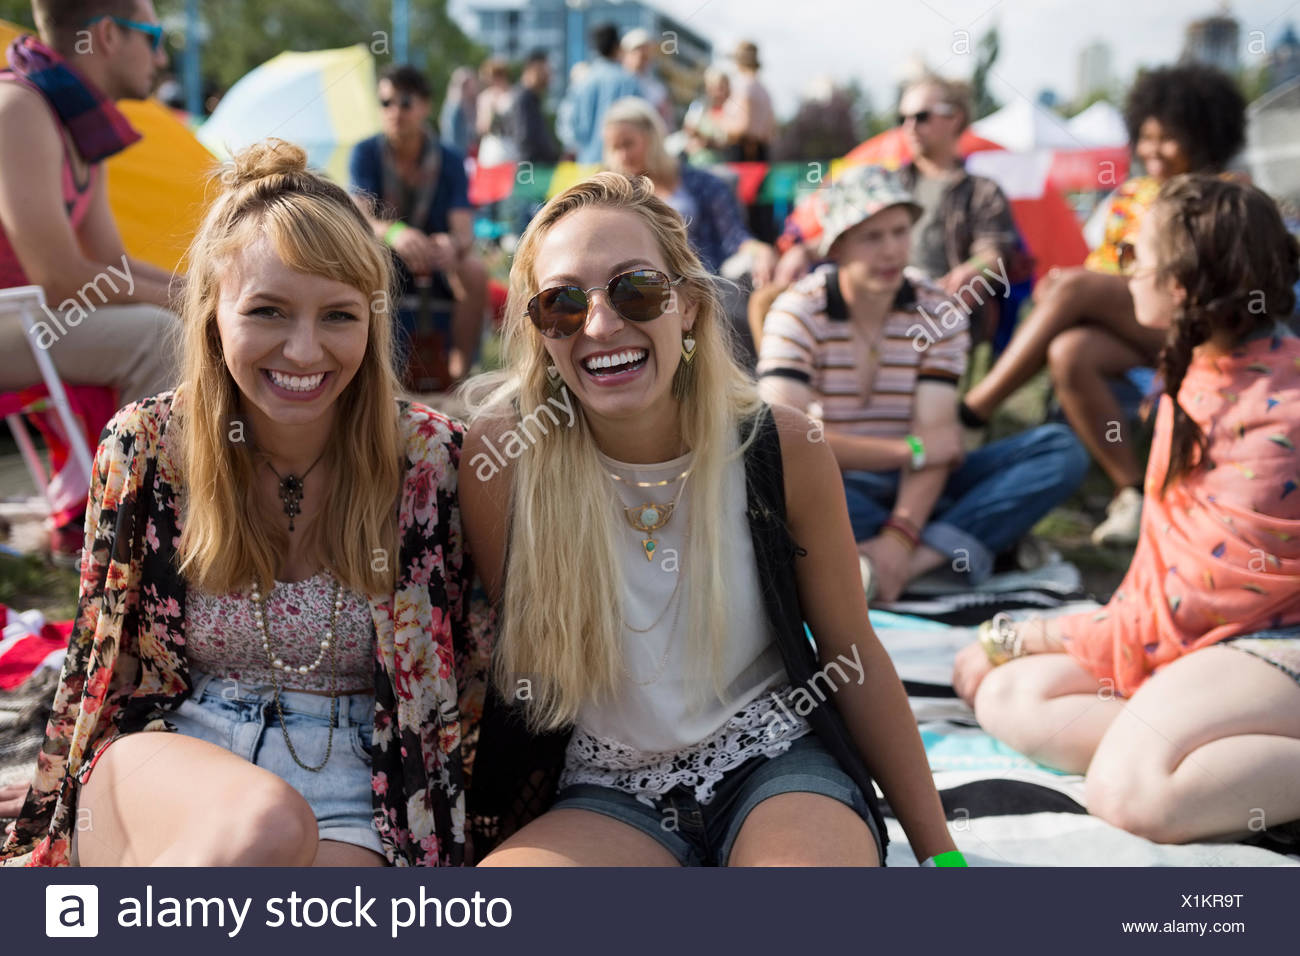 Portrait smiling young women at summer music festival campsite - Stock Image